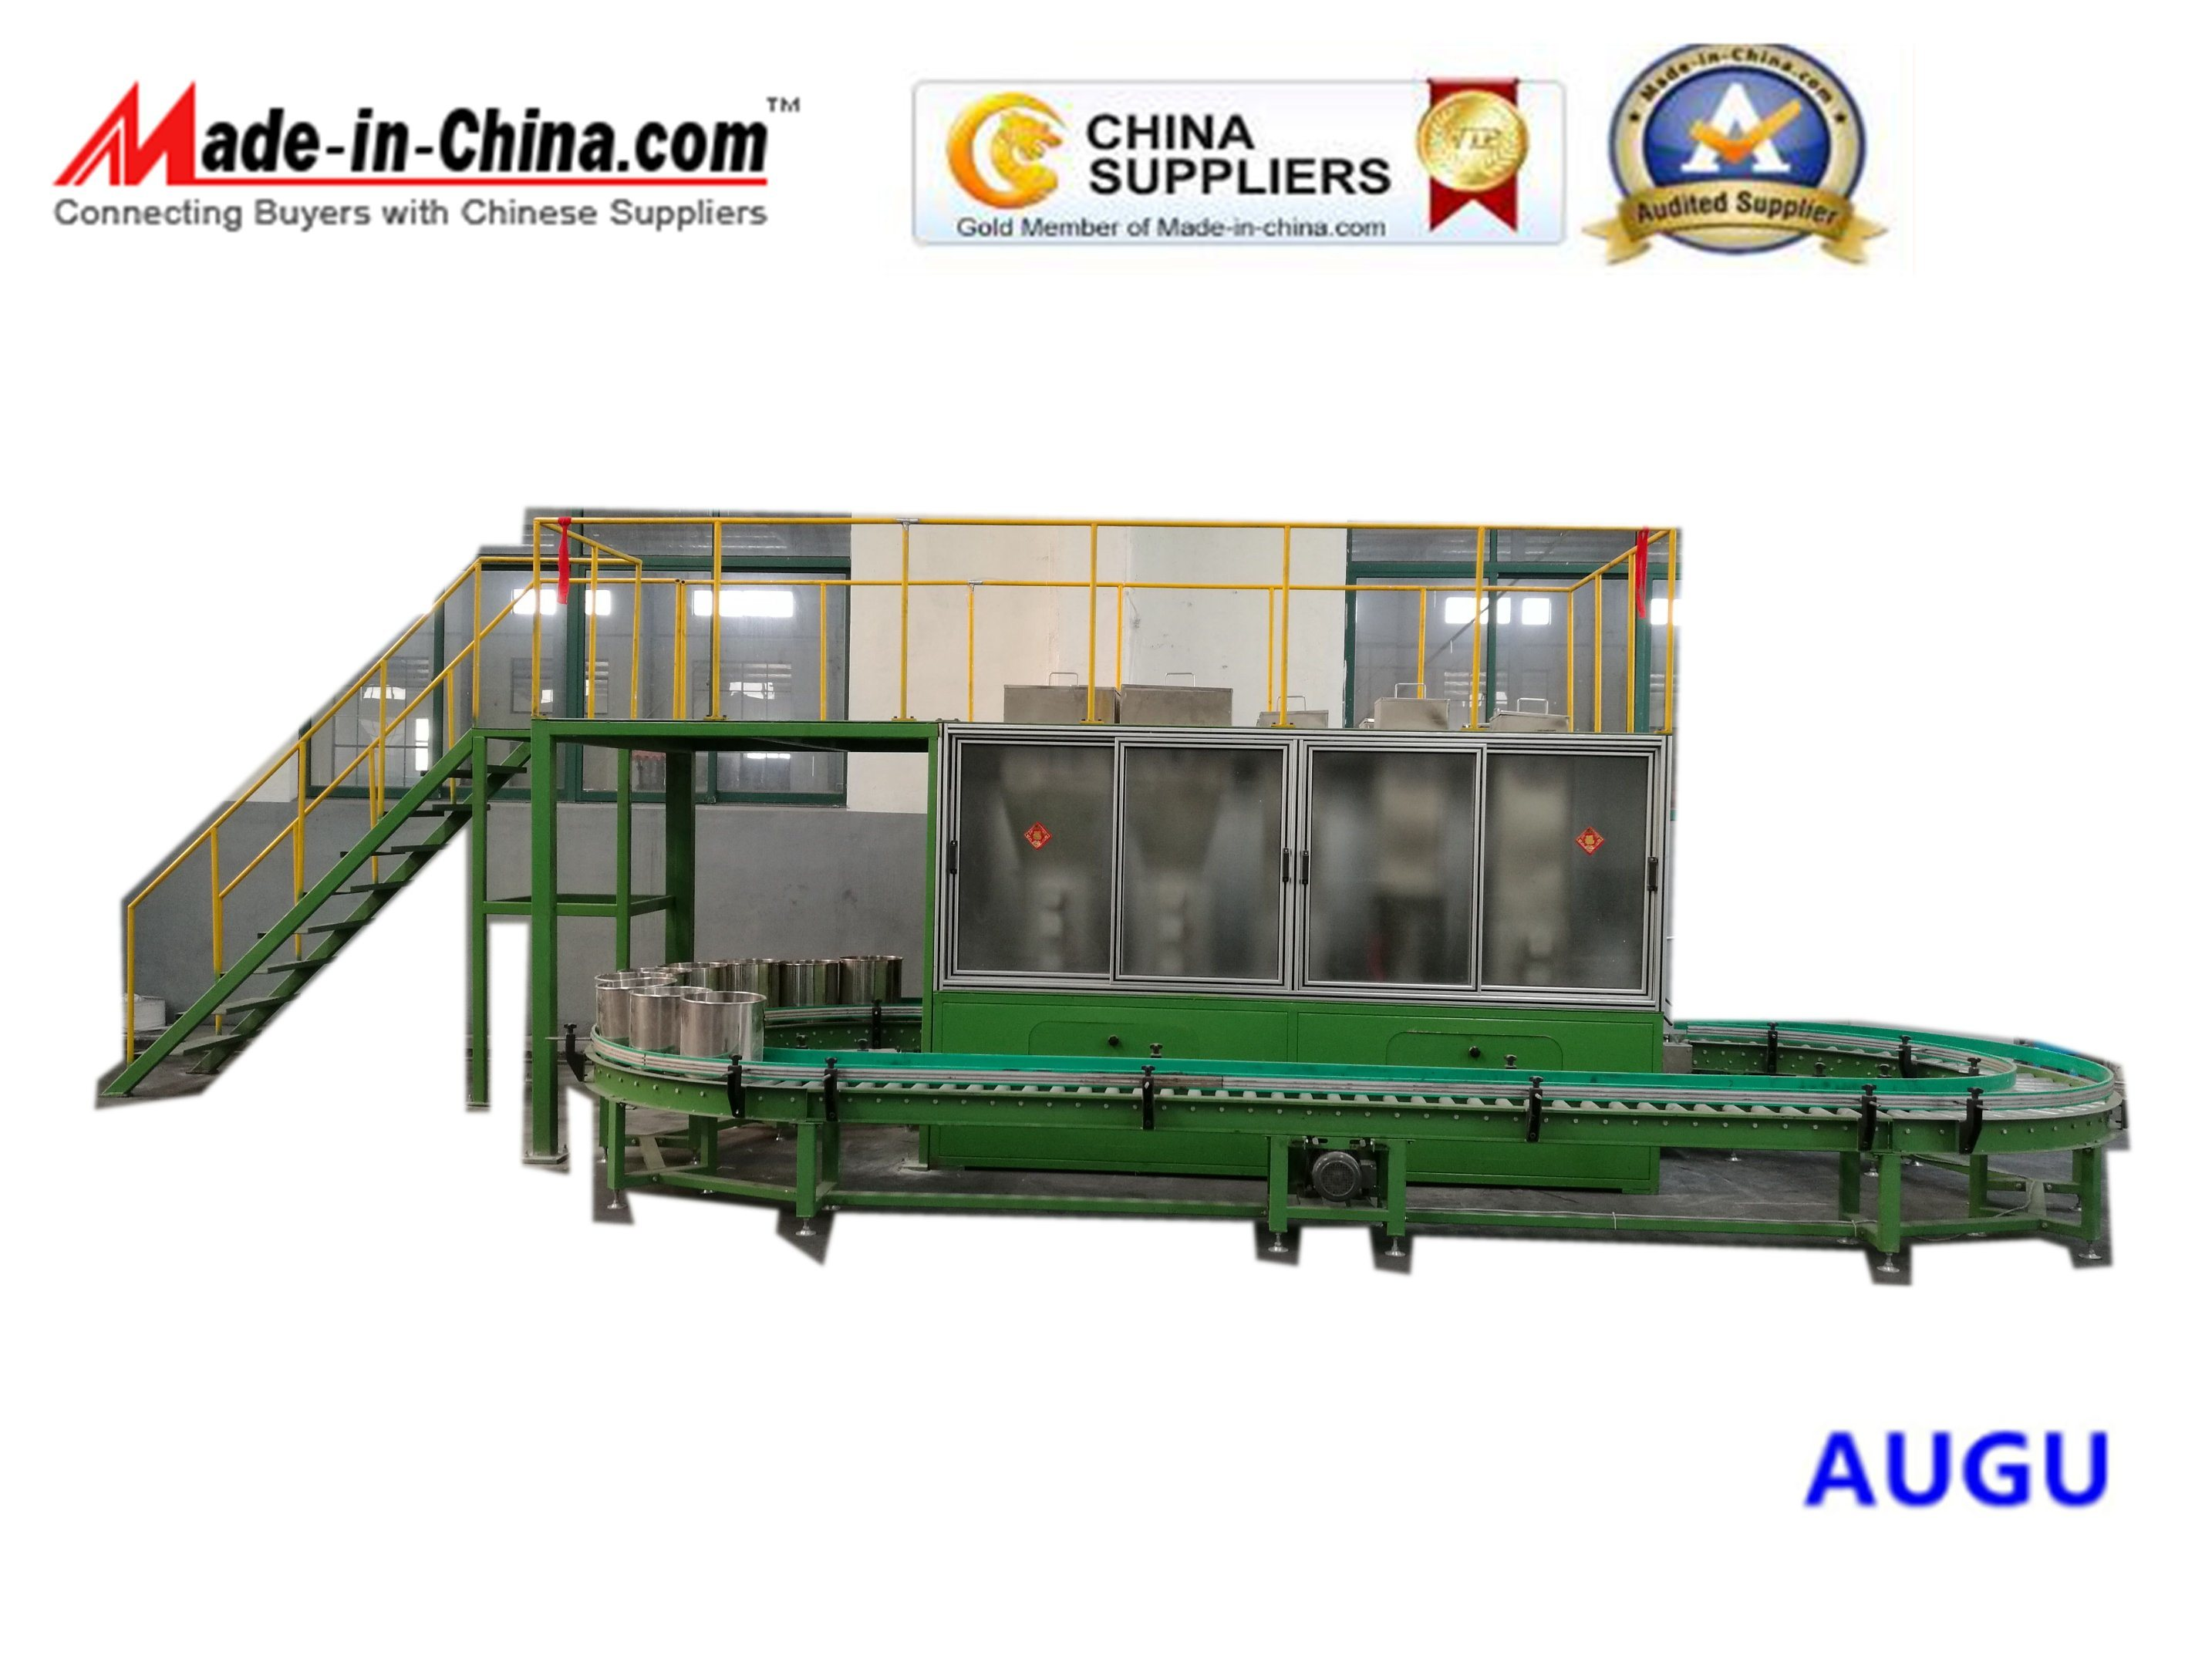 The Customizable Automatic Batching System with Fully Automatic Control